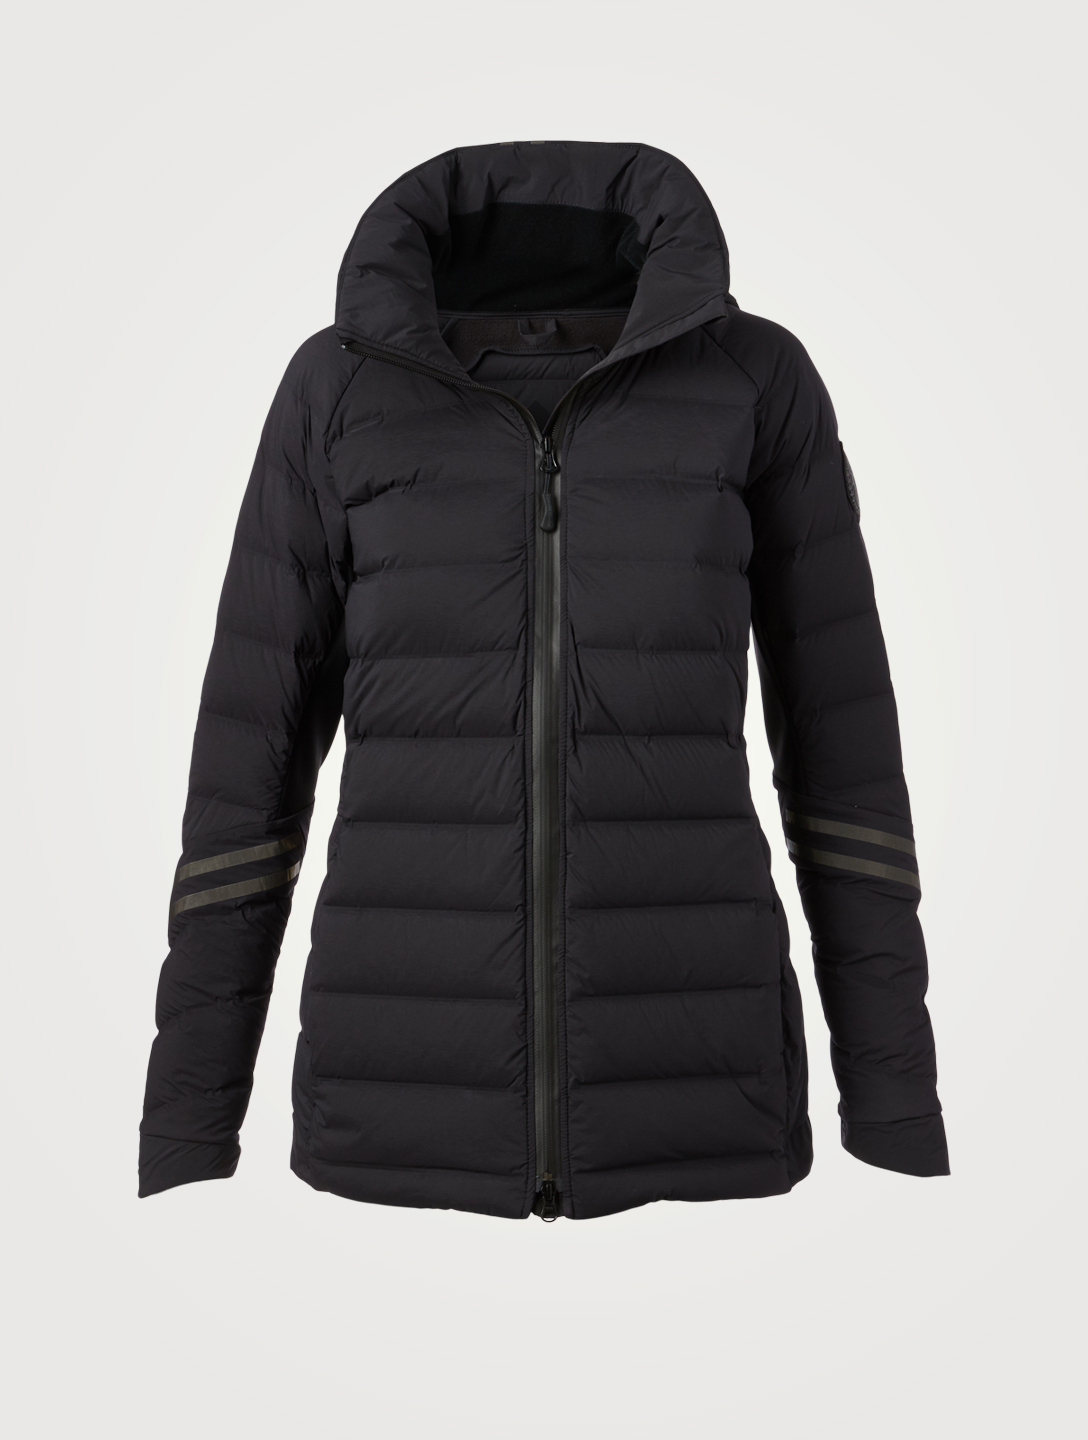 CANADA GOOSE Hybridge CW Black Label Jacket Women's Black